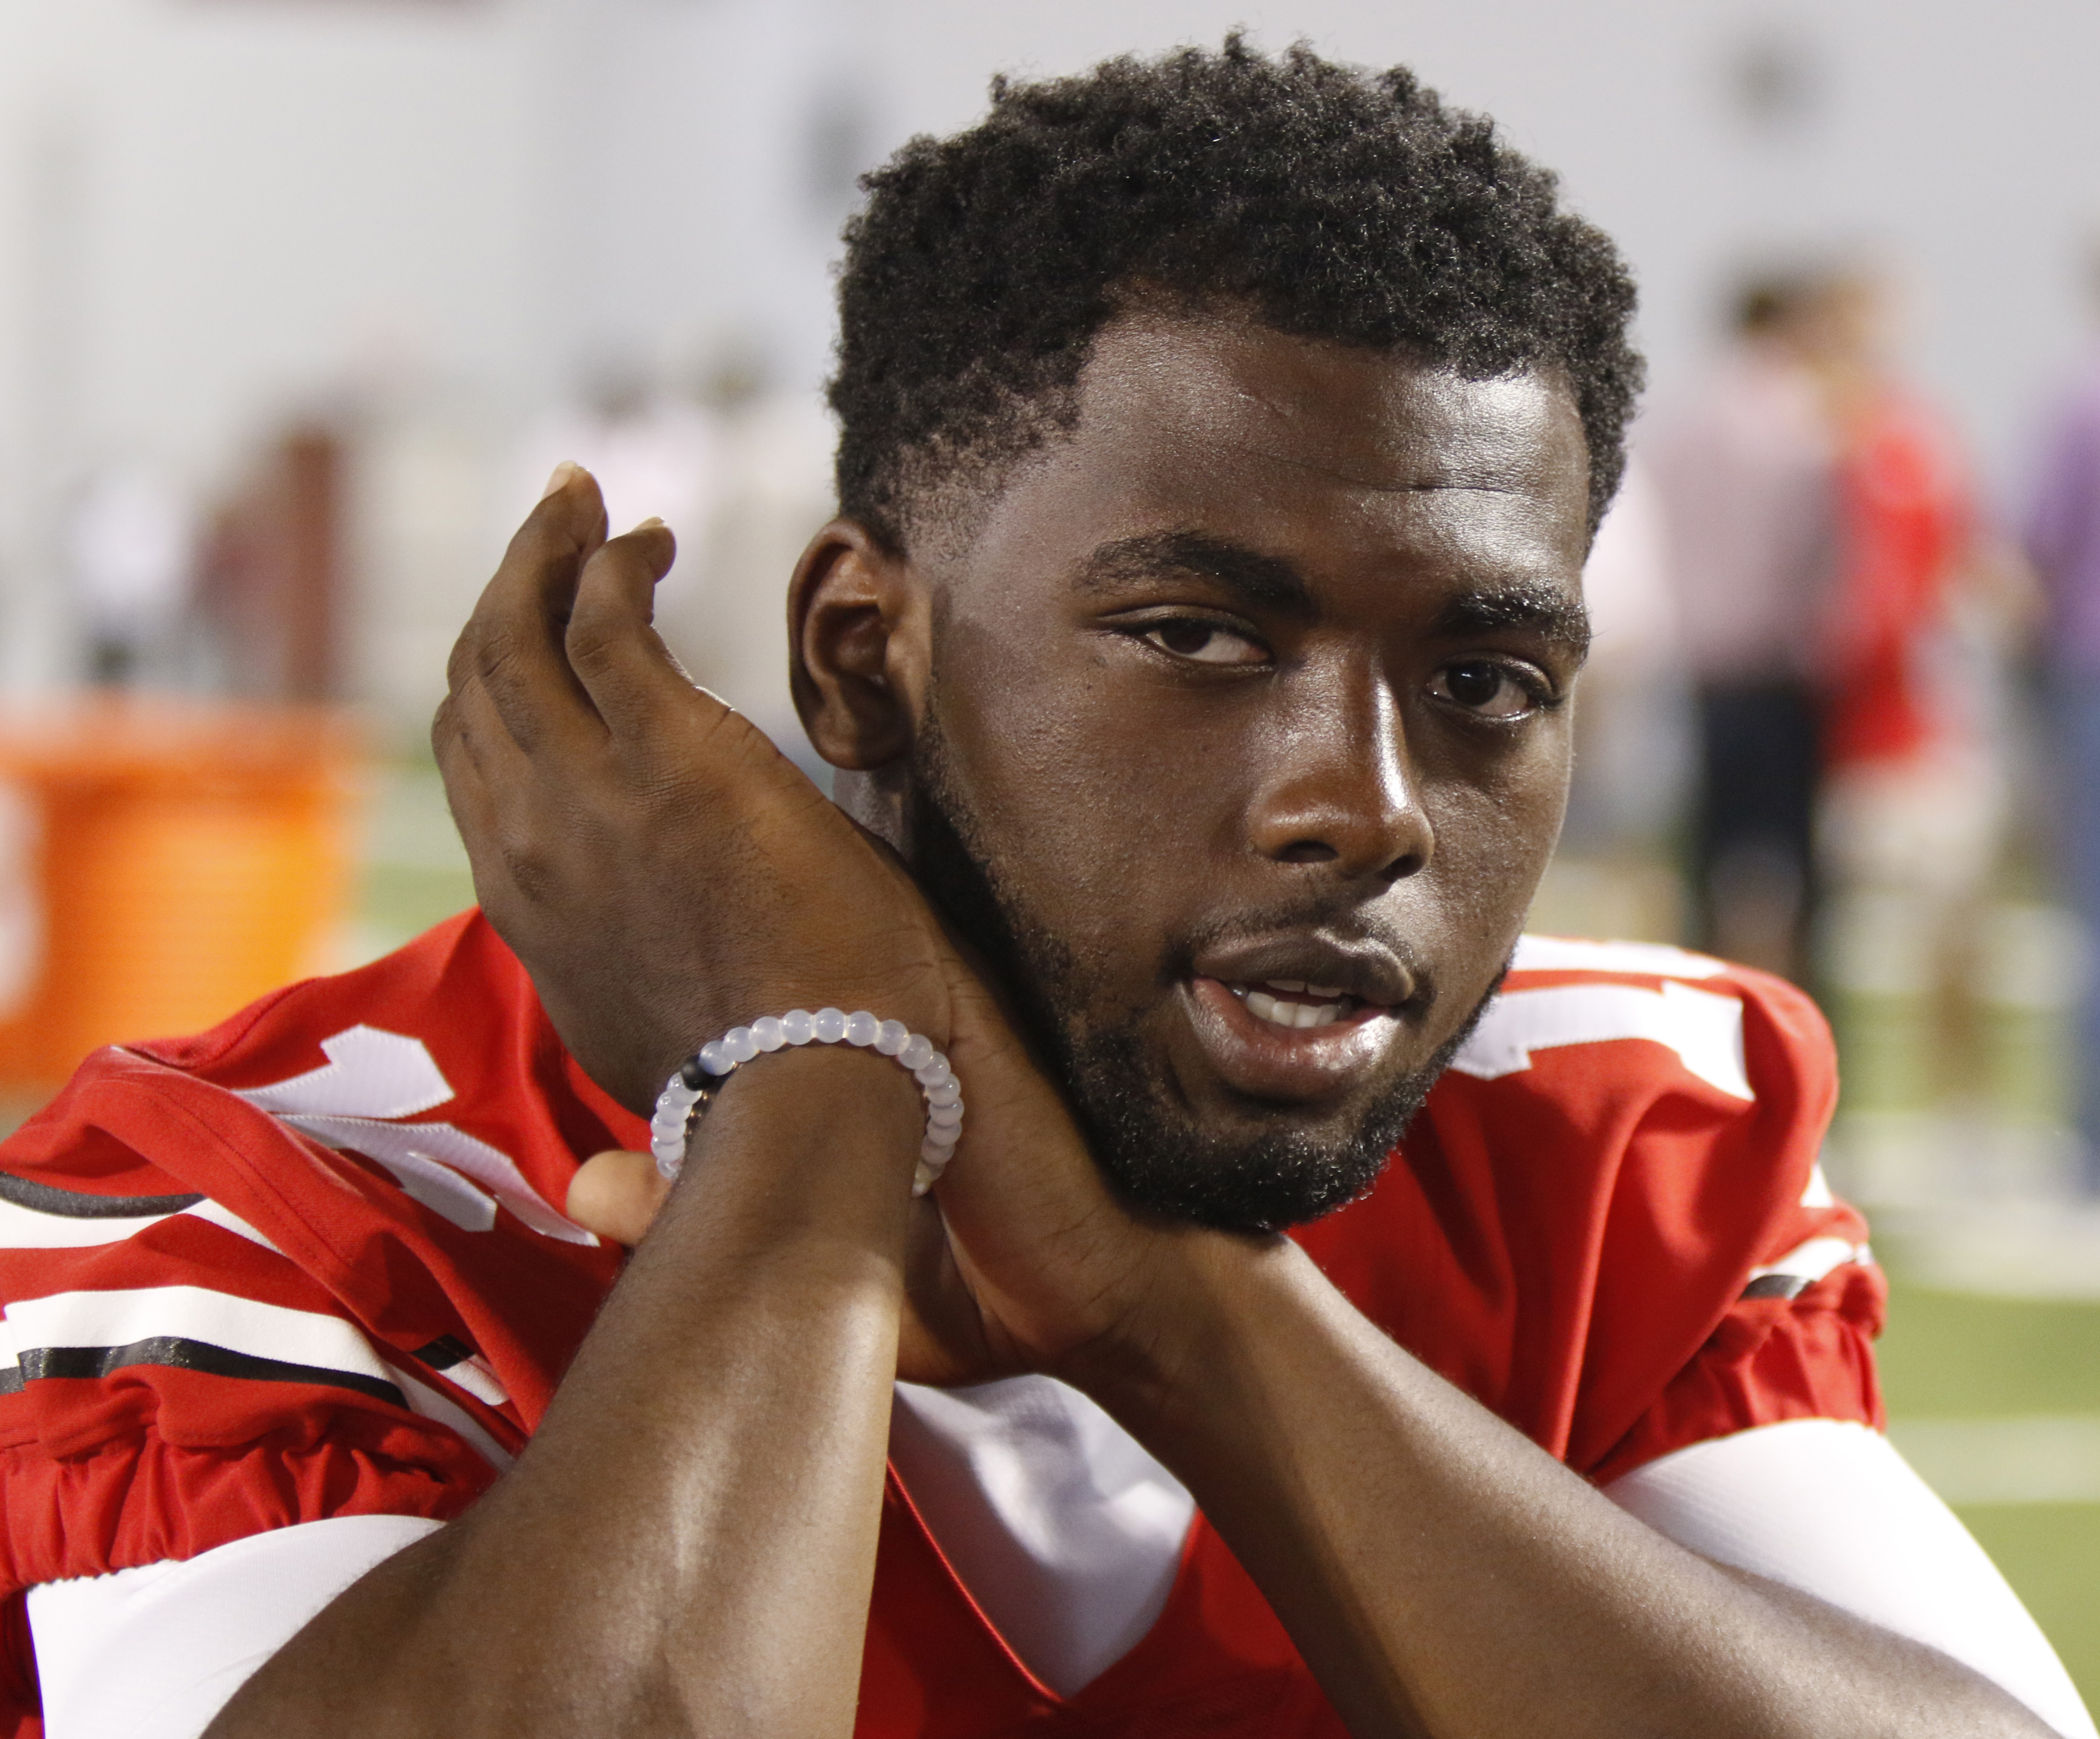 IFLE - In this Aug. 16, 2015, file photo, Ohio State quarterback J.T. Barrett speaks to reporters during the university's NCAA college football media day in Columbus, Ohio. Ohio State quarterback J.T. Barrett has been suspended for one game after being ci